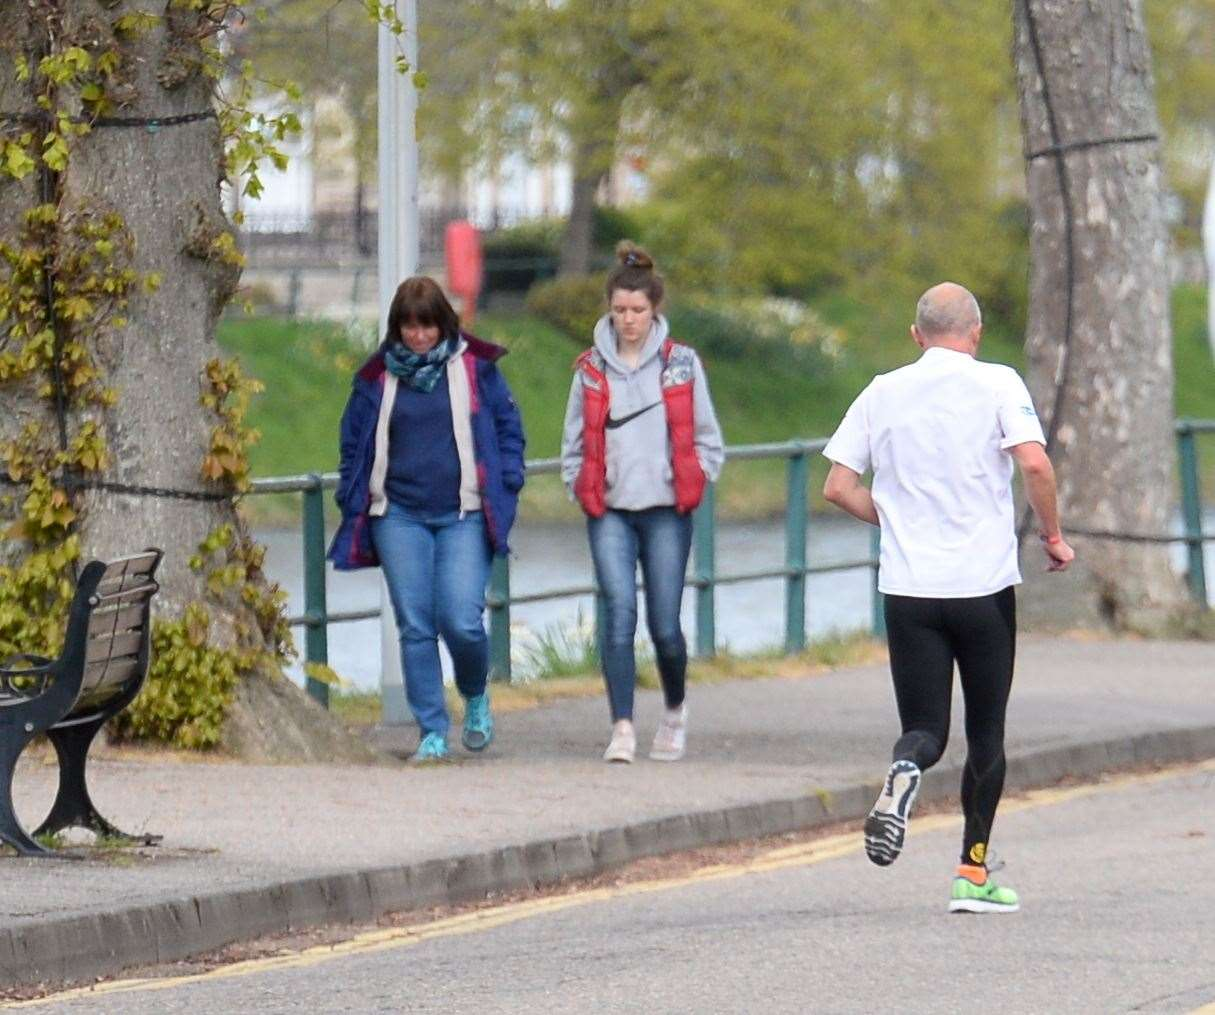 Pavements may be widened to make it safer for walkers and runners to pass each other while physically distancing.